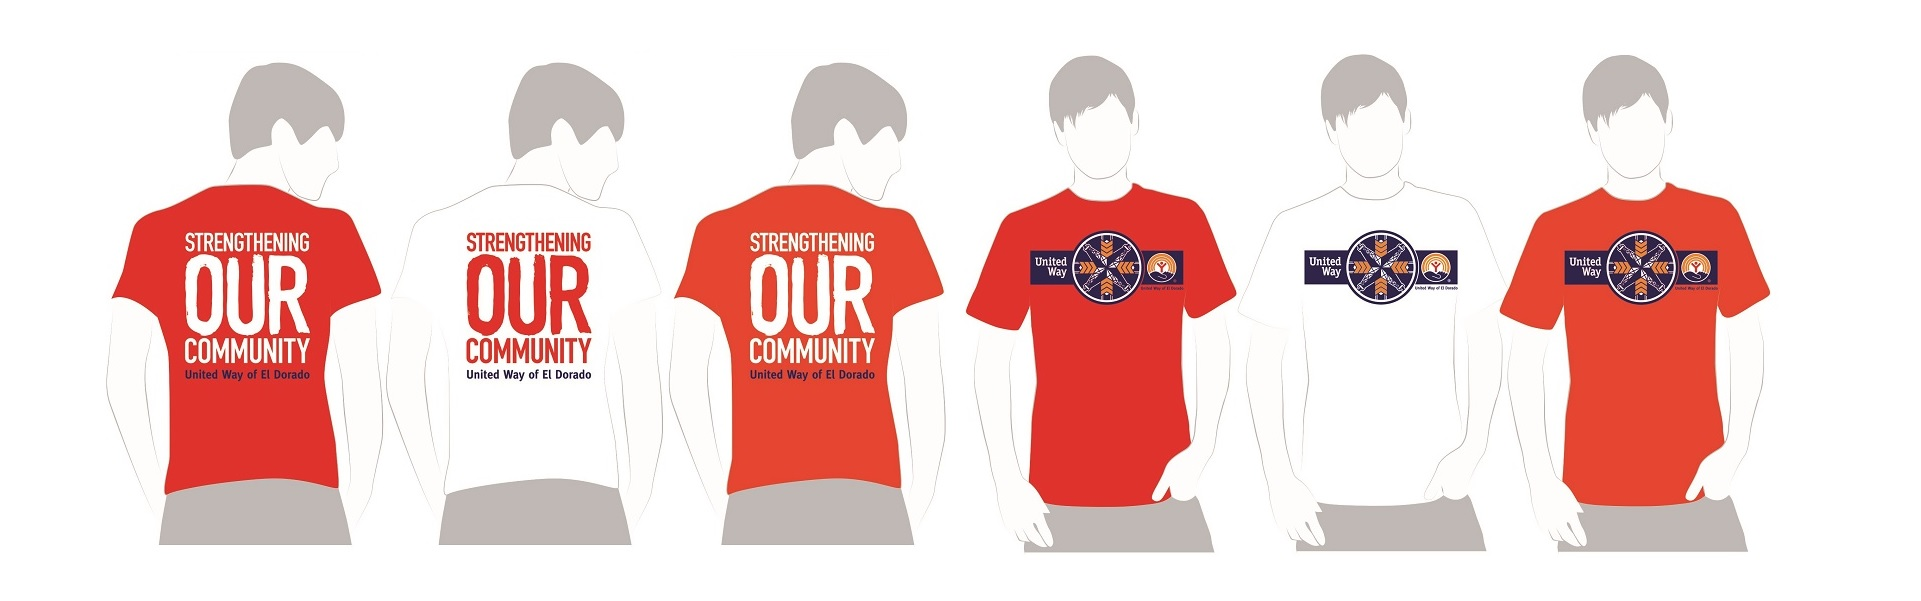 United Way T-Shirts